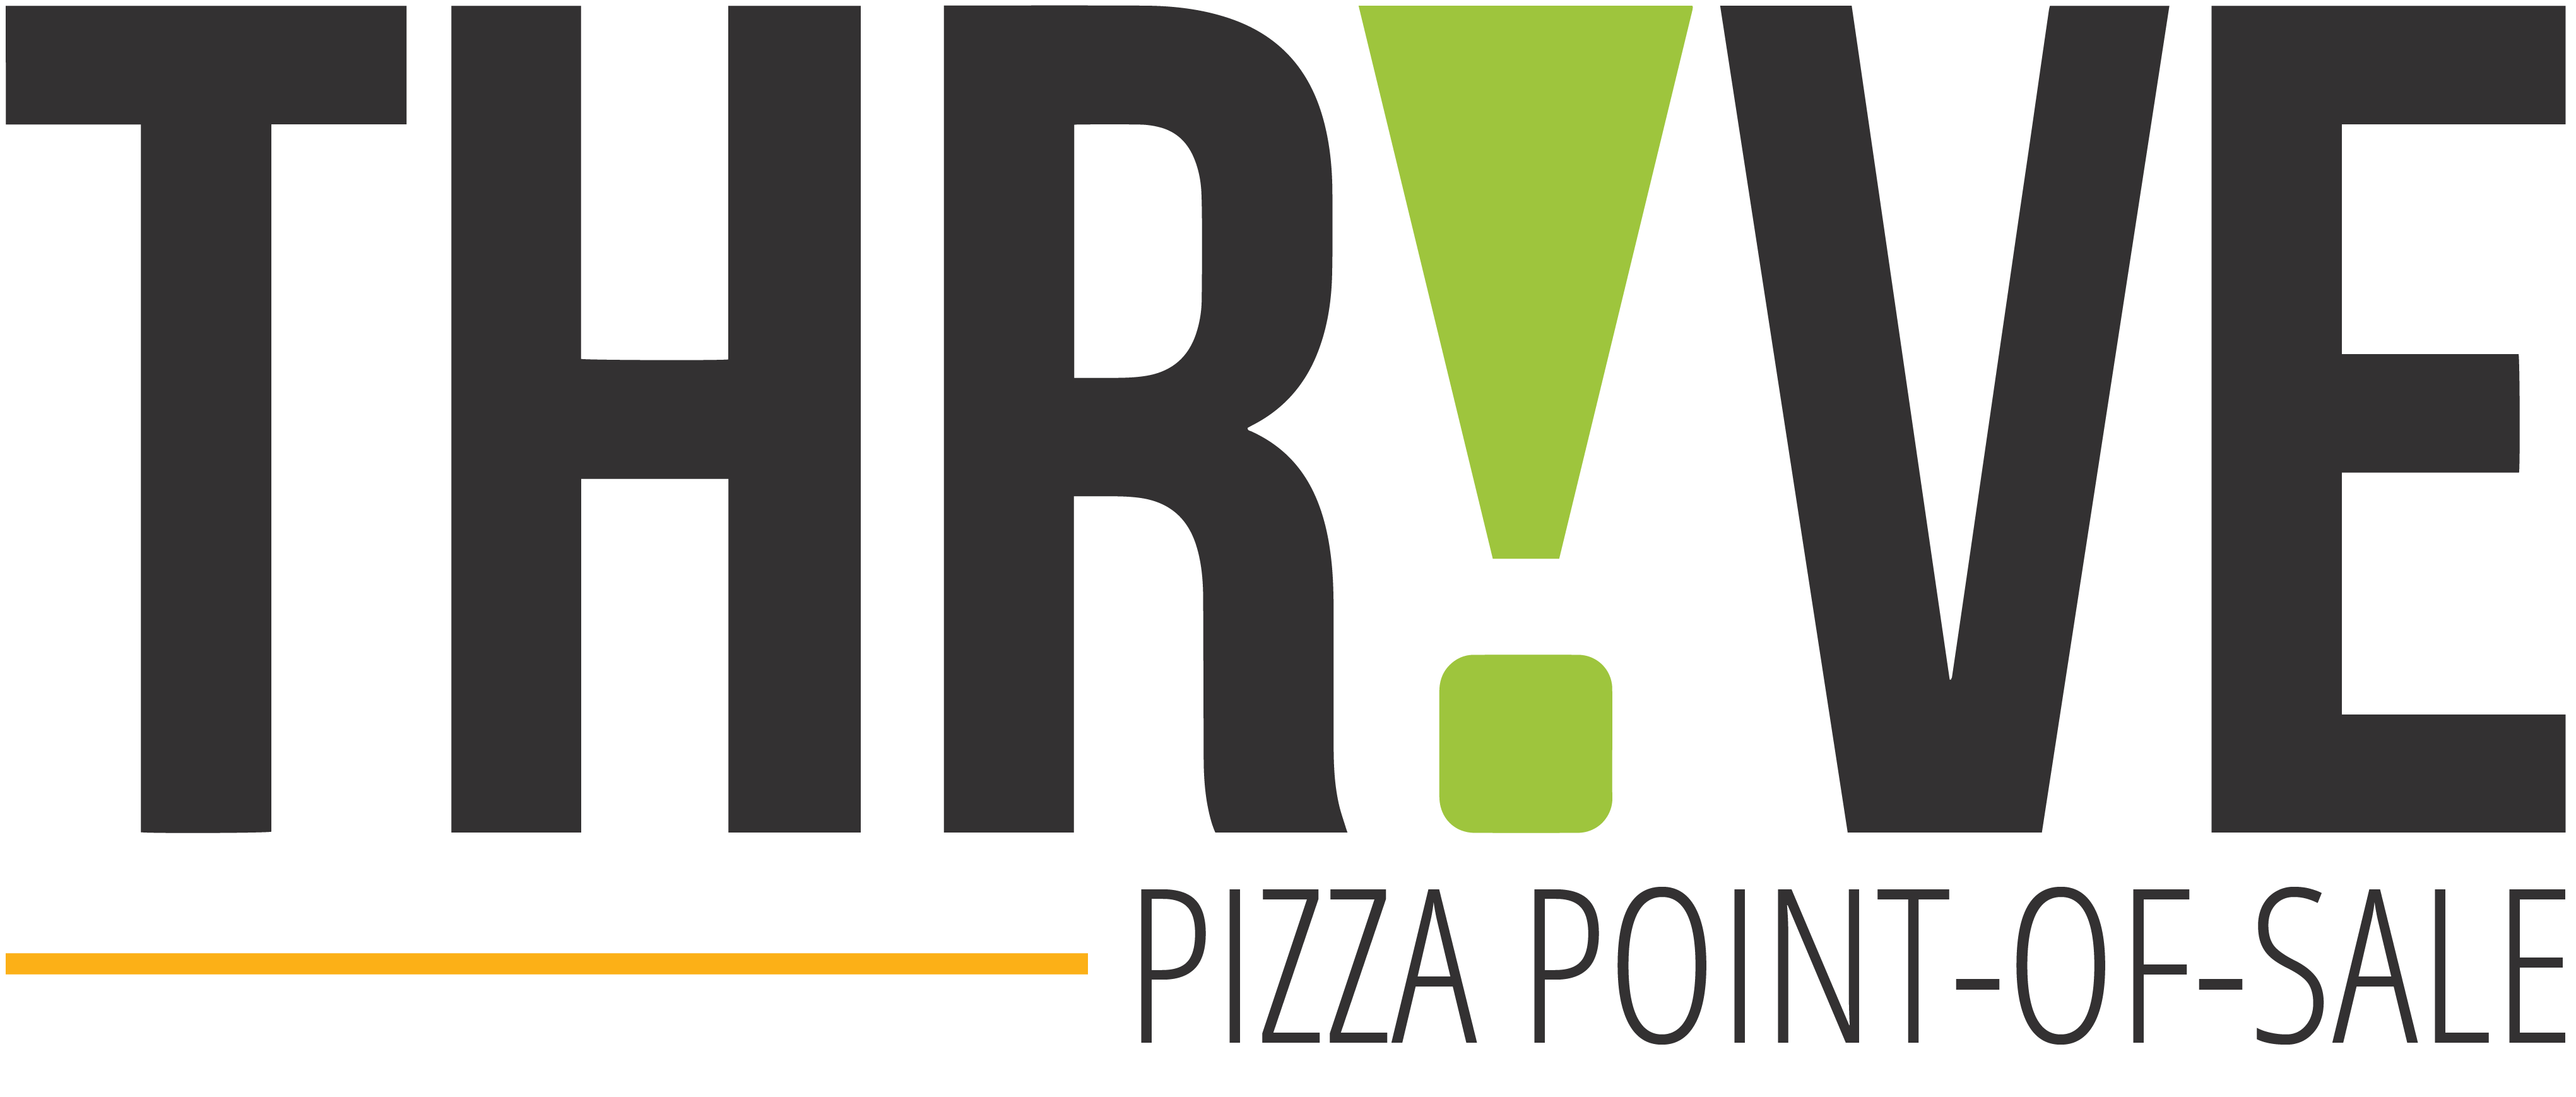 Pizza & Delivery Point-of-Sale